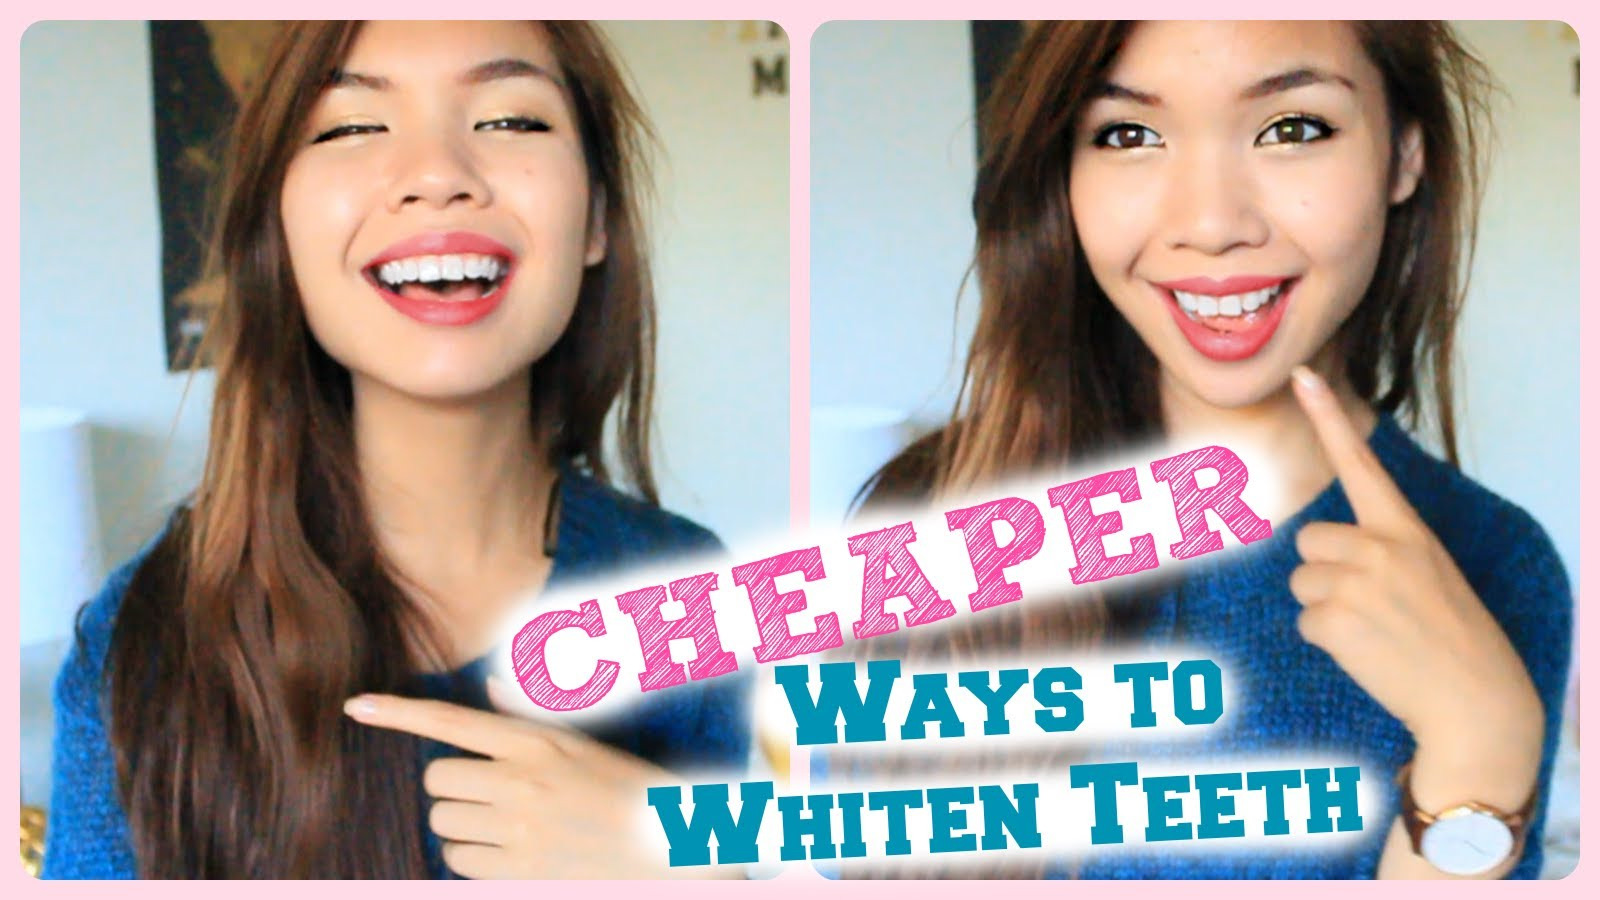 Cheaper Ways I Whiten My Teeth With Hydrogen Peroxide Baking